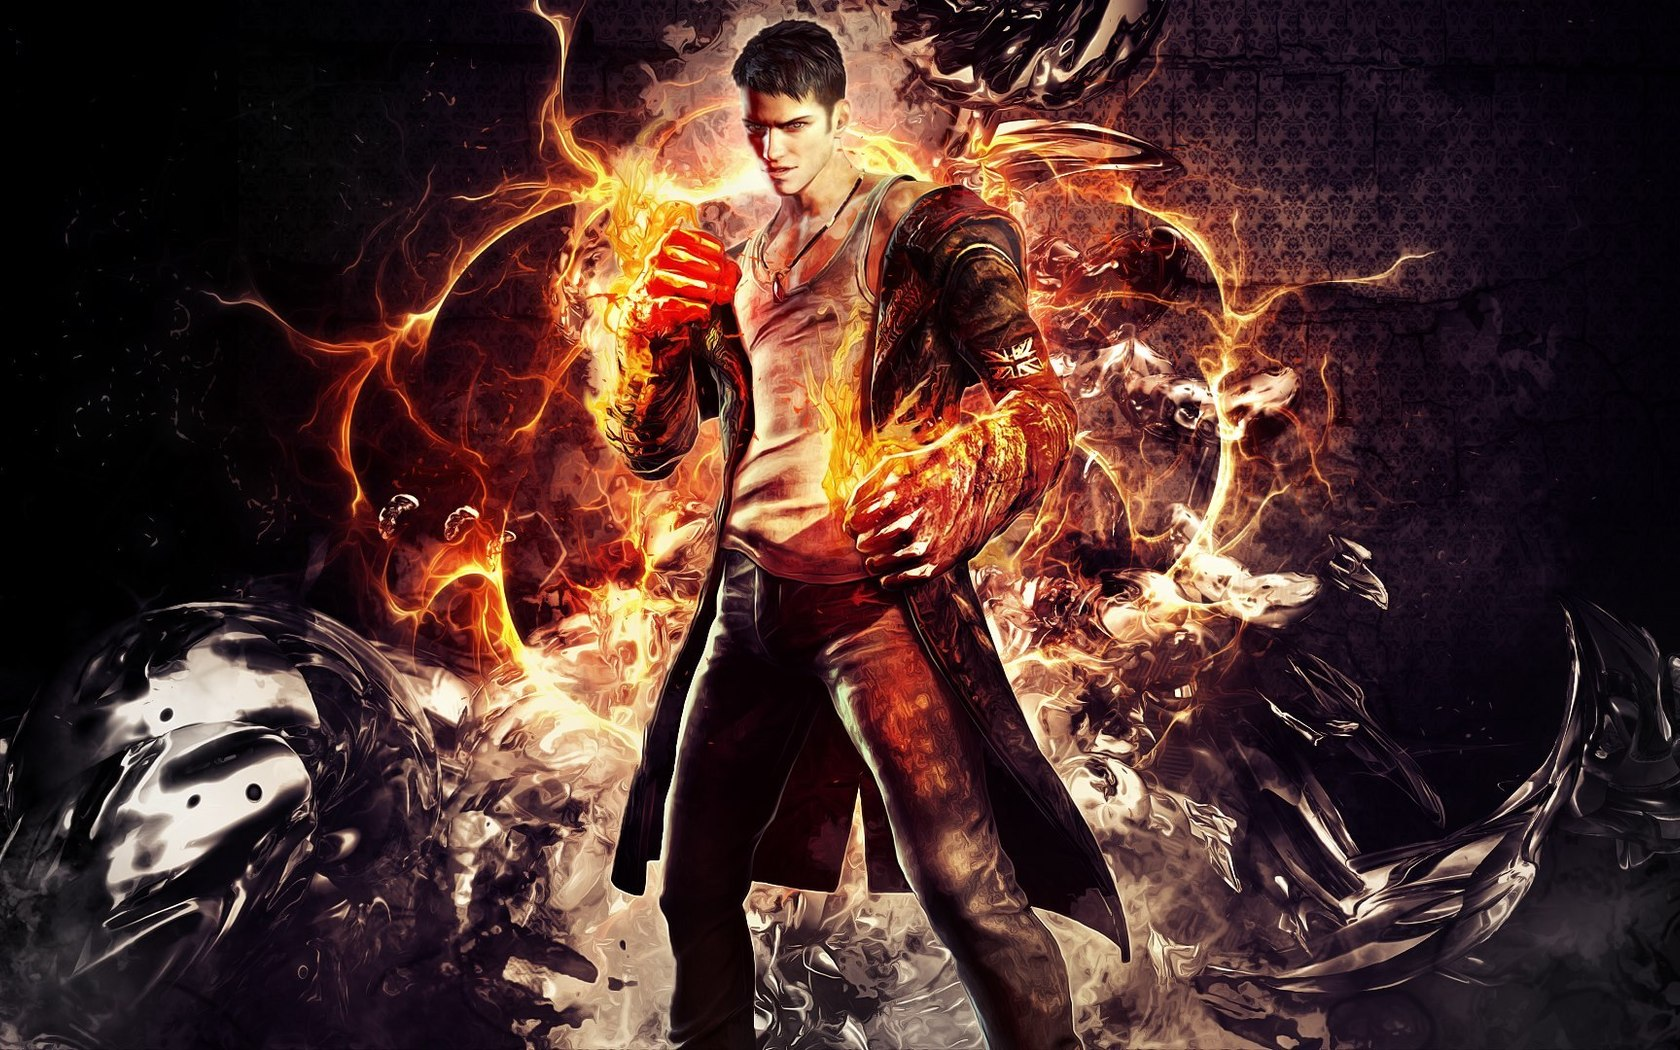 Devil may cry pictures hd desktop wallpapers 4k hd - Devil may cry hd pics ...